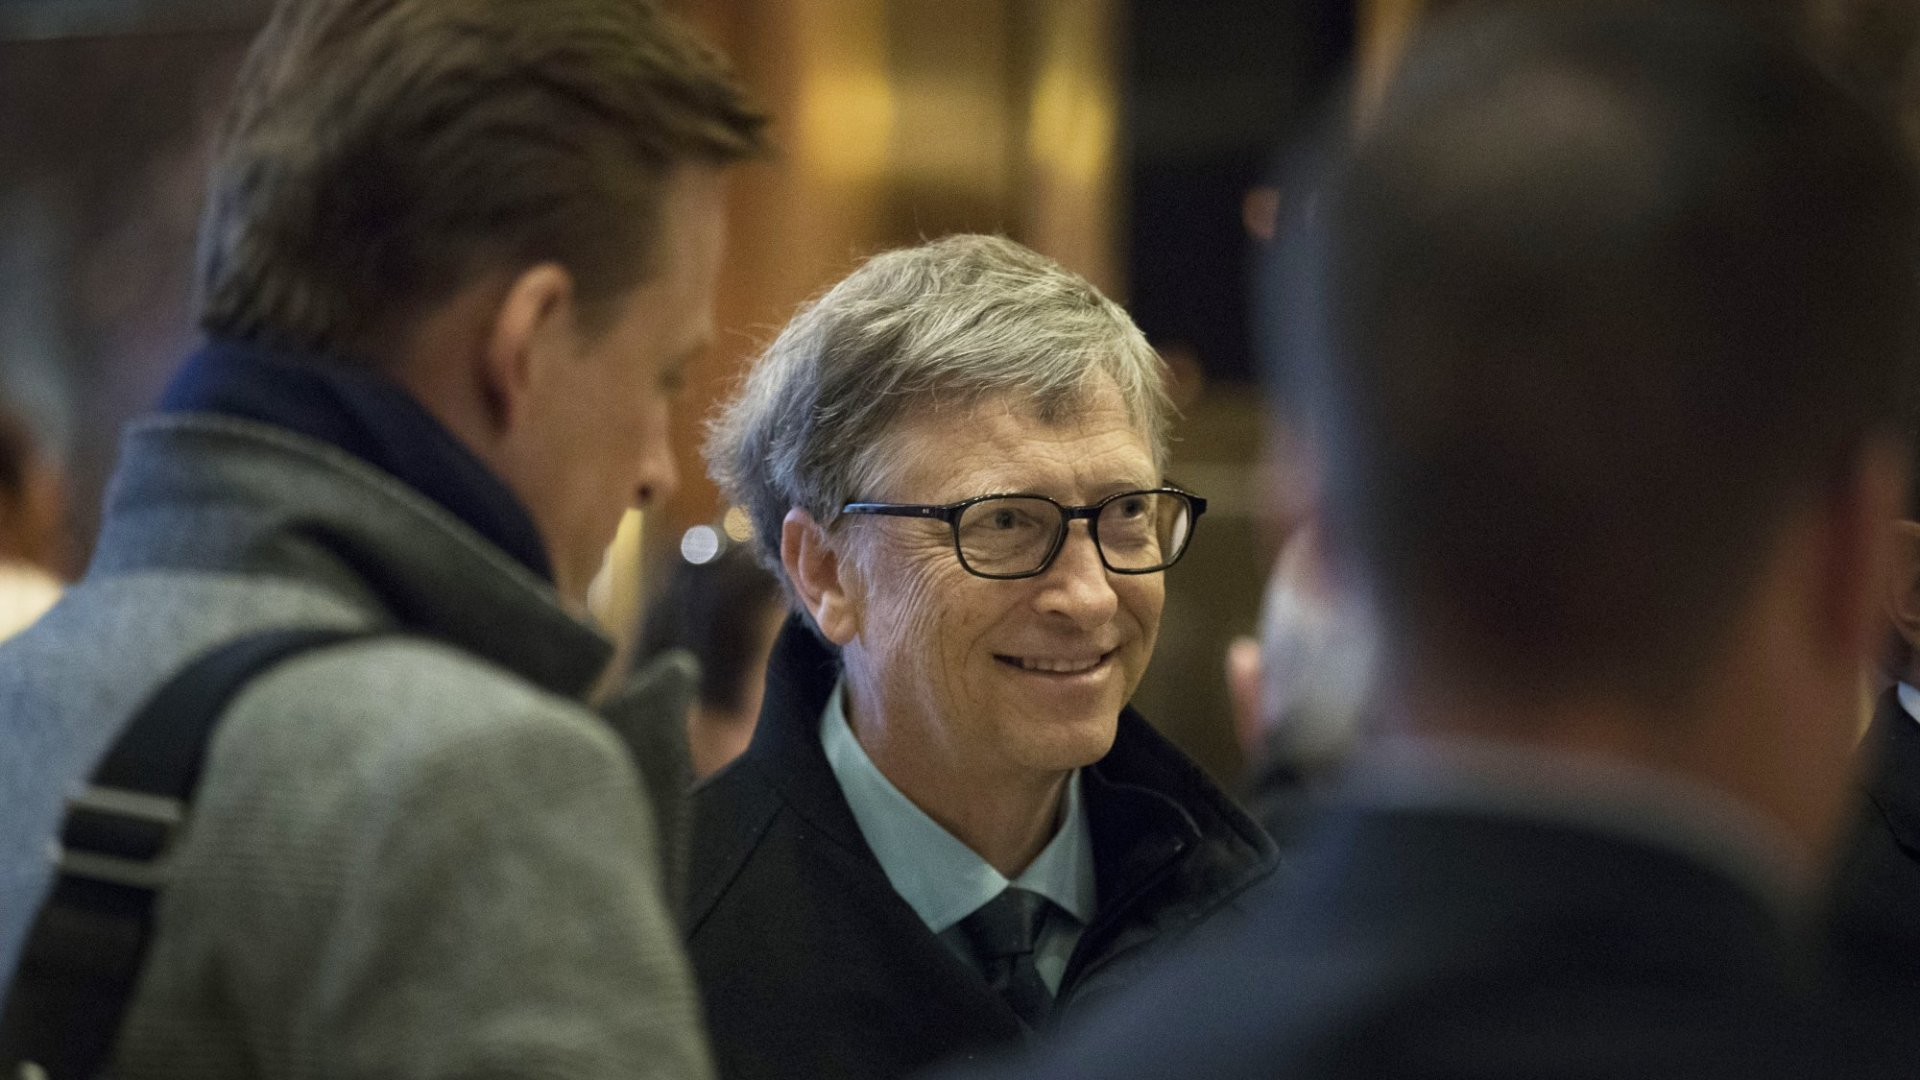 Bill Gates arrives at Trump Tower for a meeting with Donald Trump.